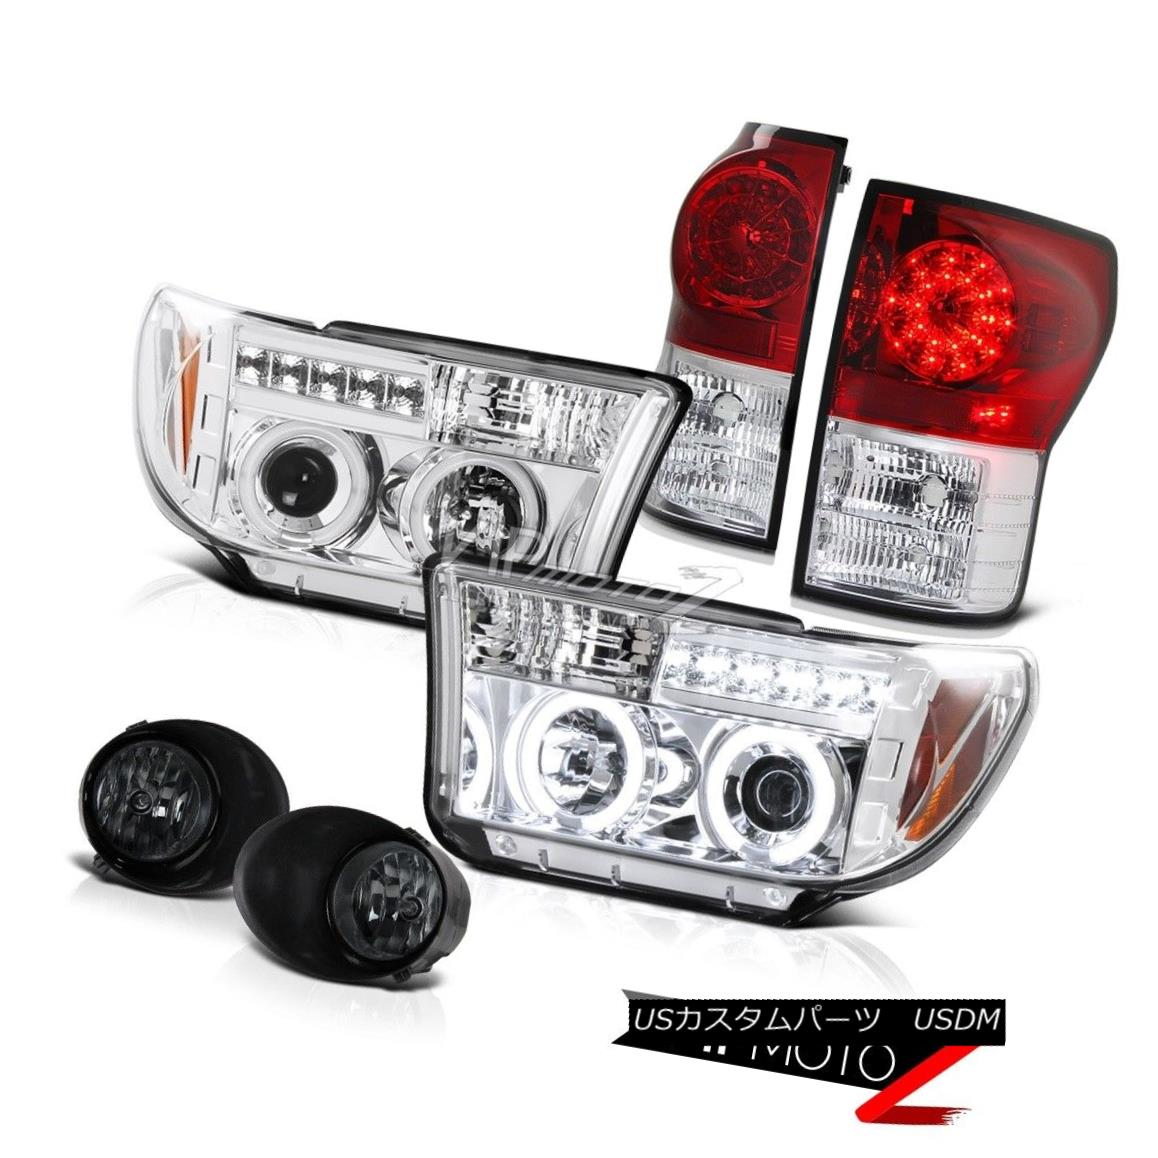 テールライト 07-13 Toyota Tundra CCFL Halo Projector Headlight+Led Tail Light+Smoke Fog Lamp 07-13 Toyota Tundra CCFL Haloプロジェクターヘッドライト+ Ledテールライト+スモークフォグランプ